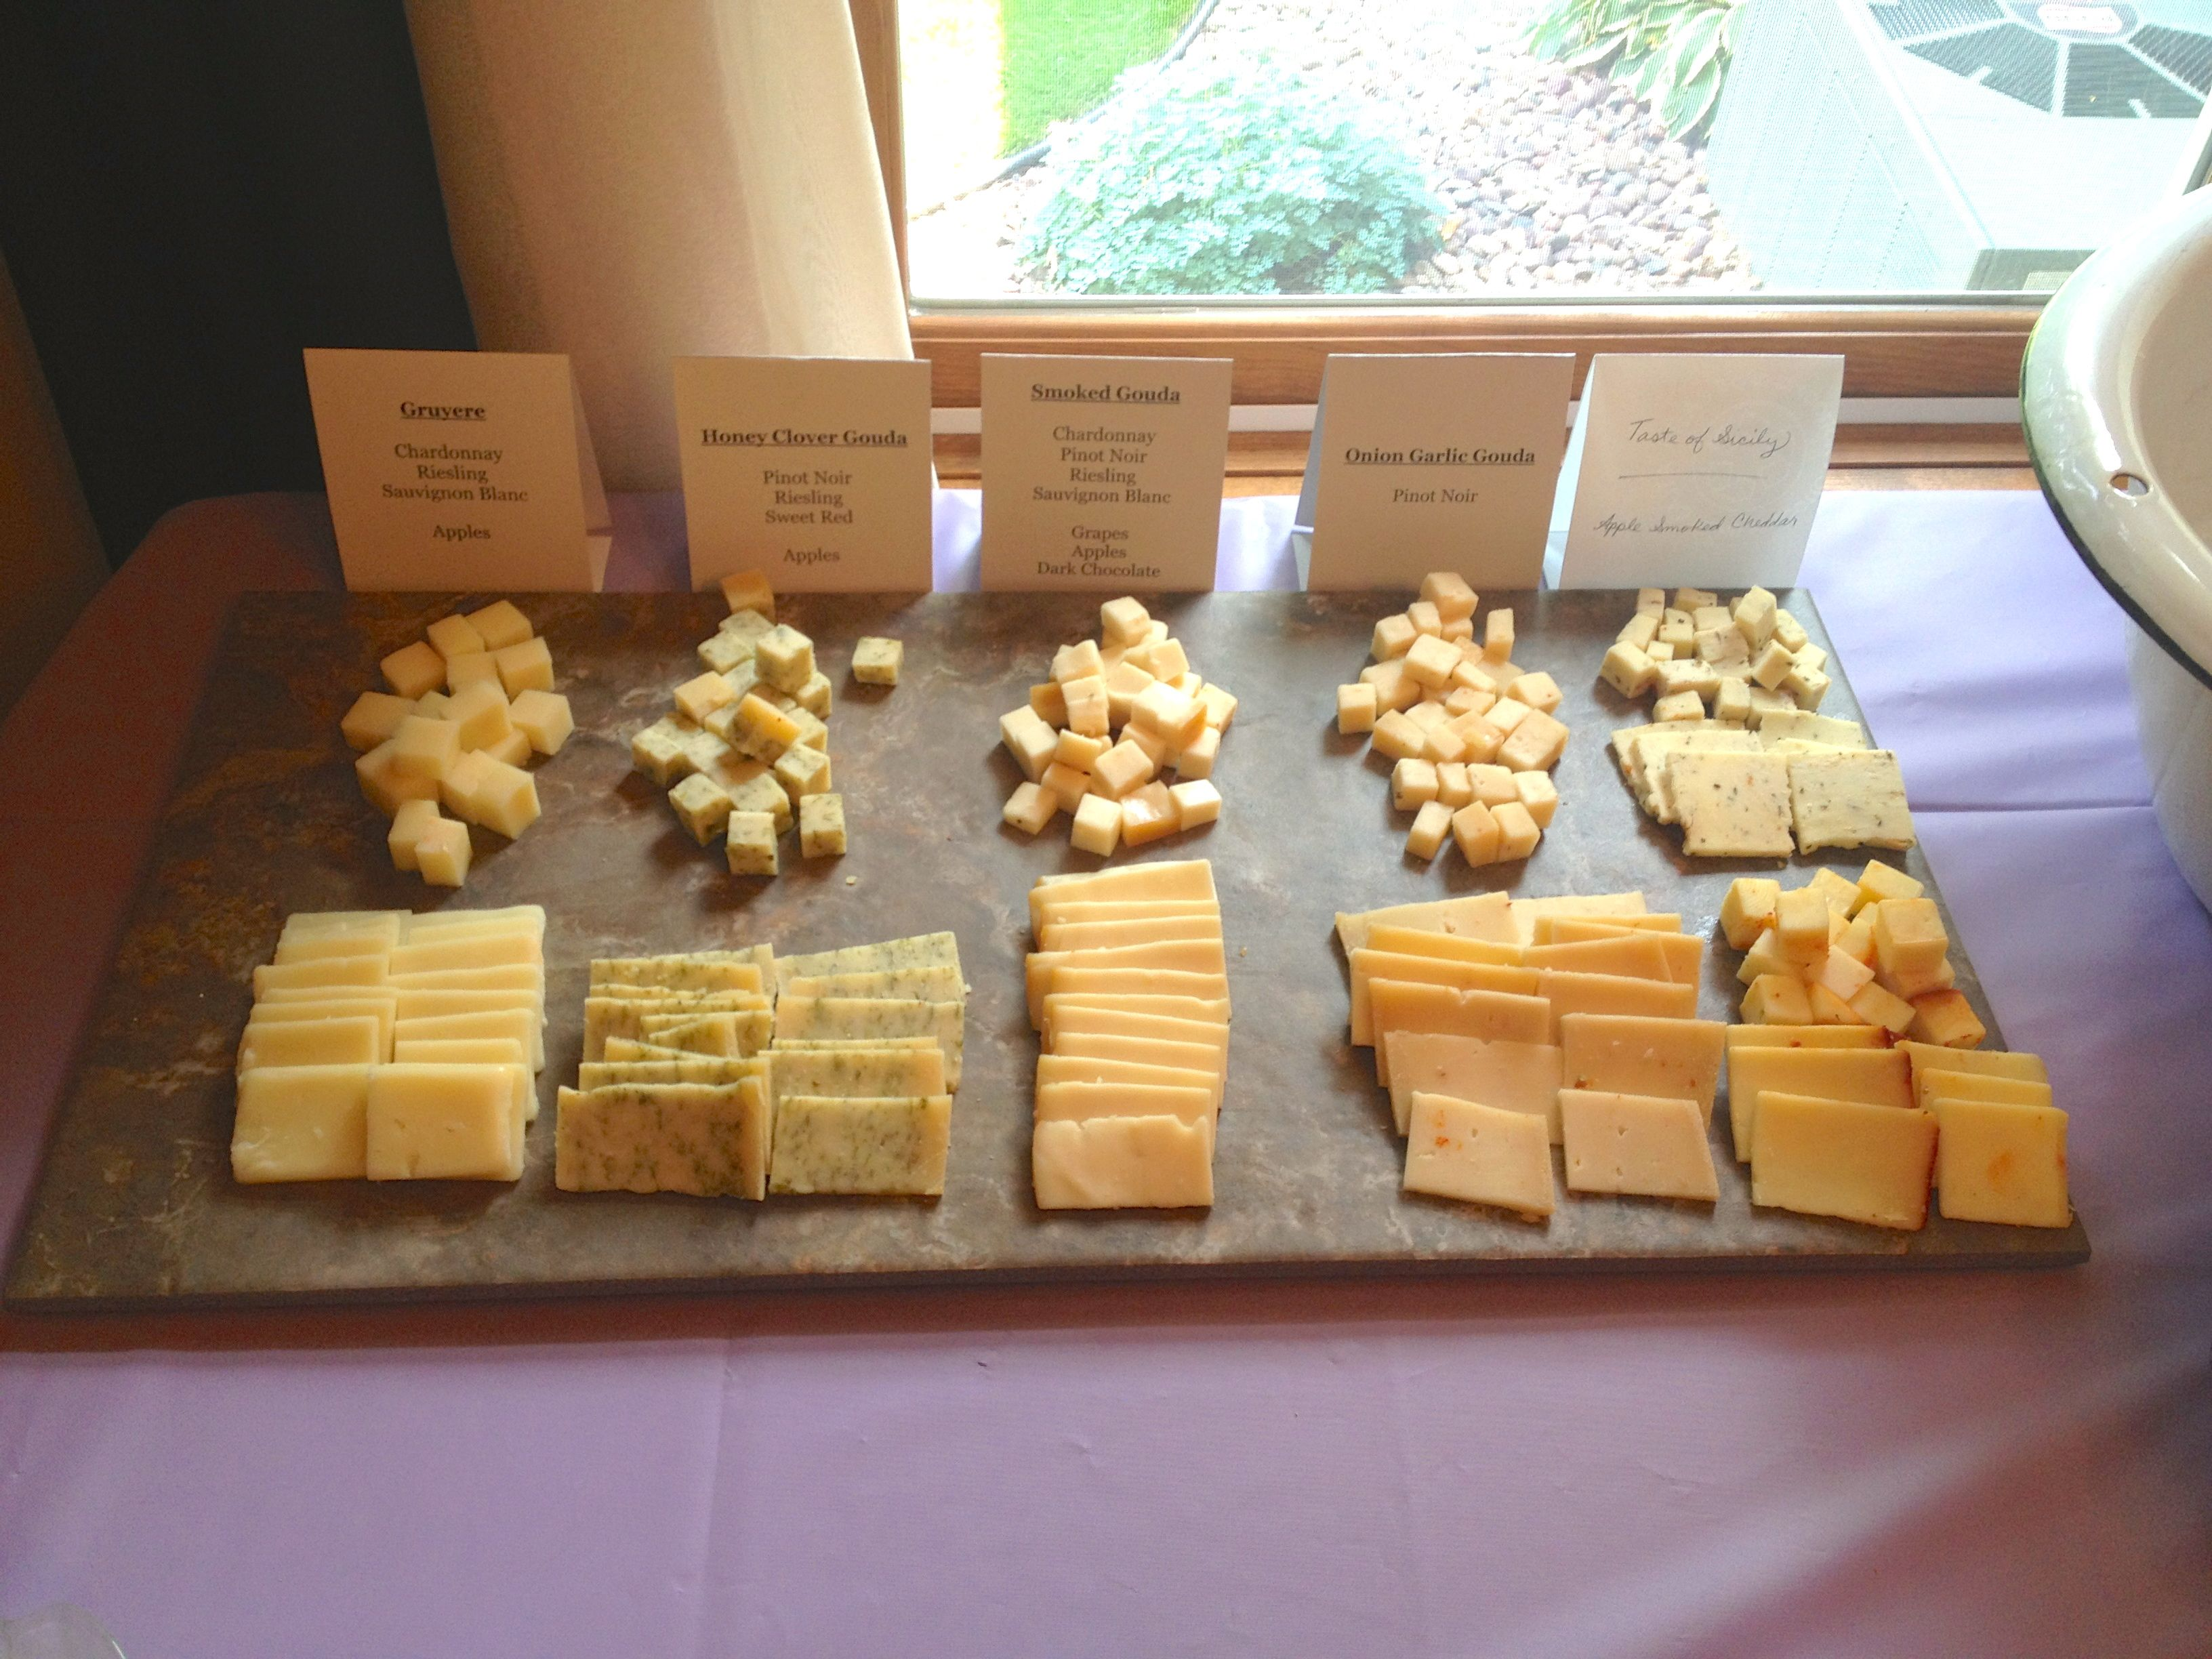 Bridal Shower Cheese Spreadleftover Floor Tiles For Displaying Chunks And Slices Of